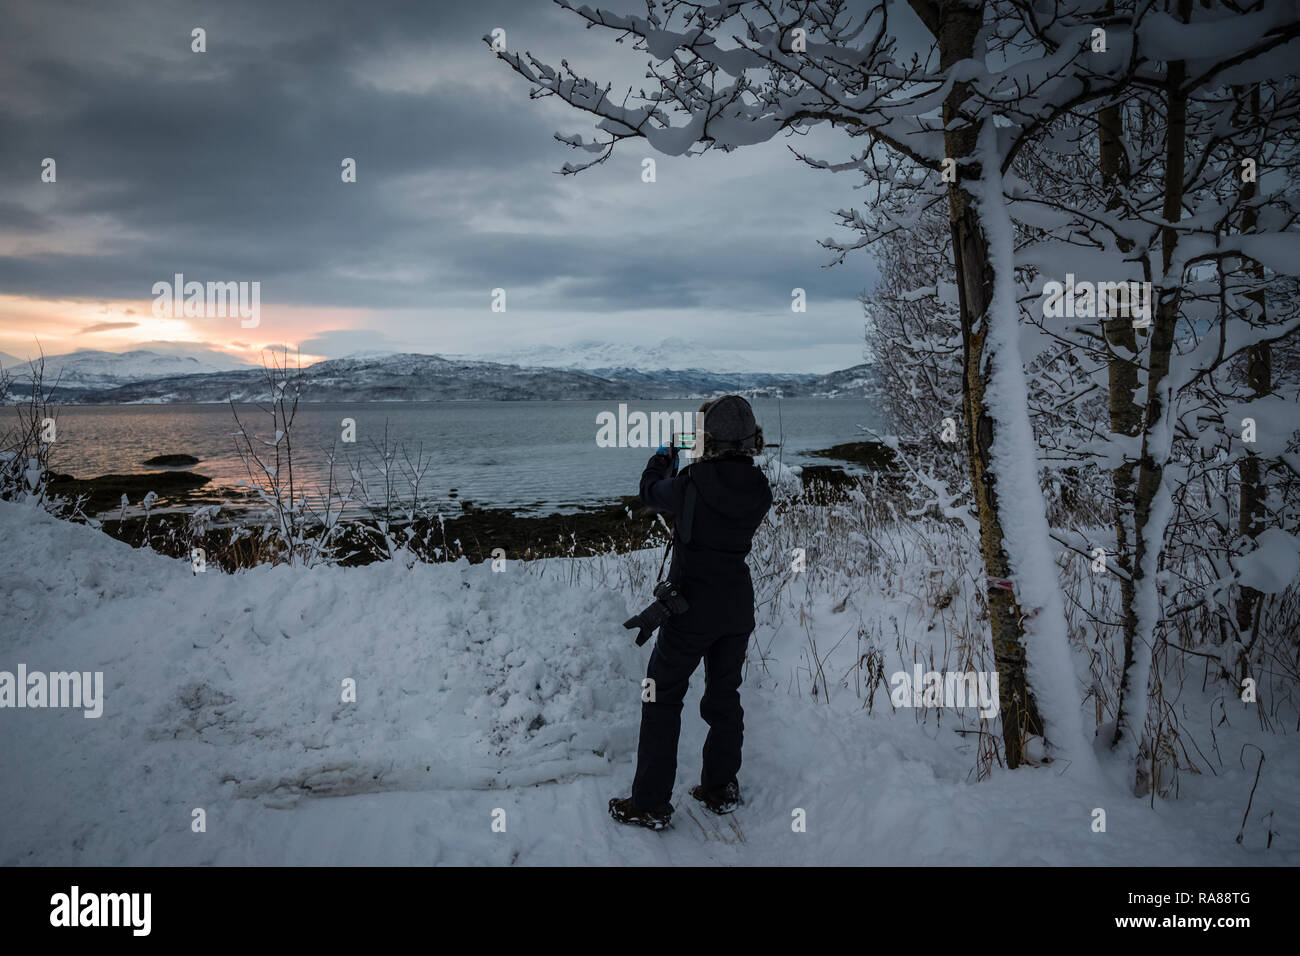 Female photographer capturing winter snows at Finnsnes, Norway. Stock Photo